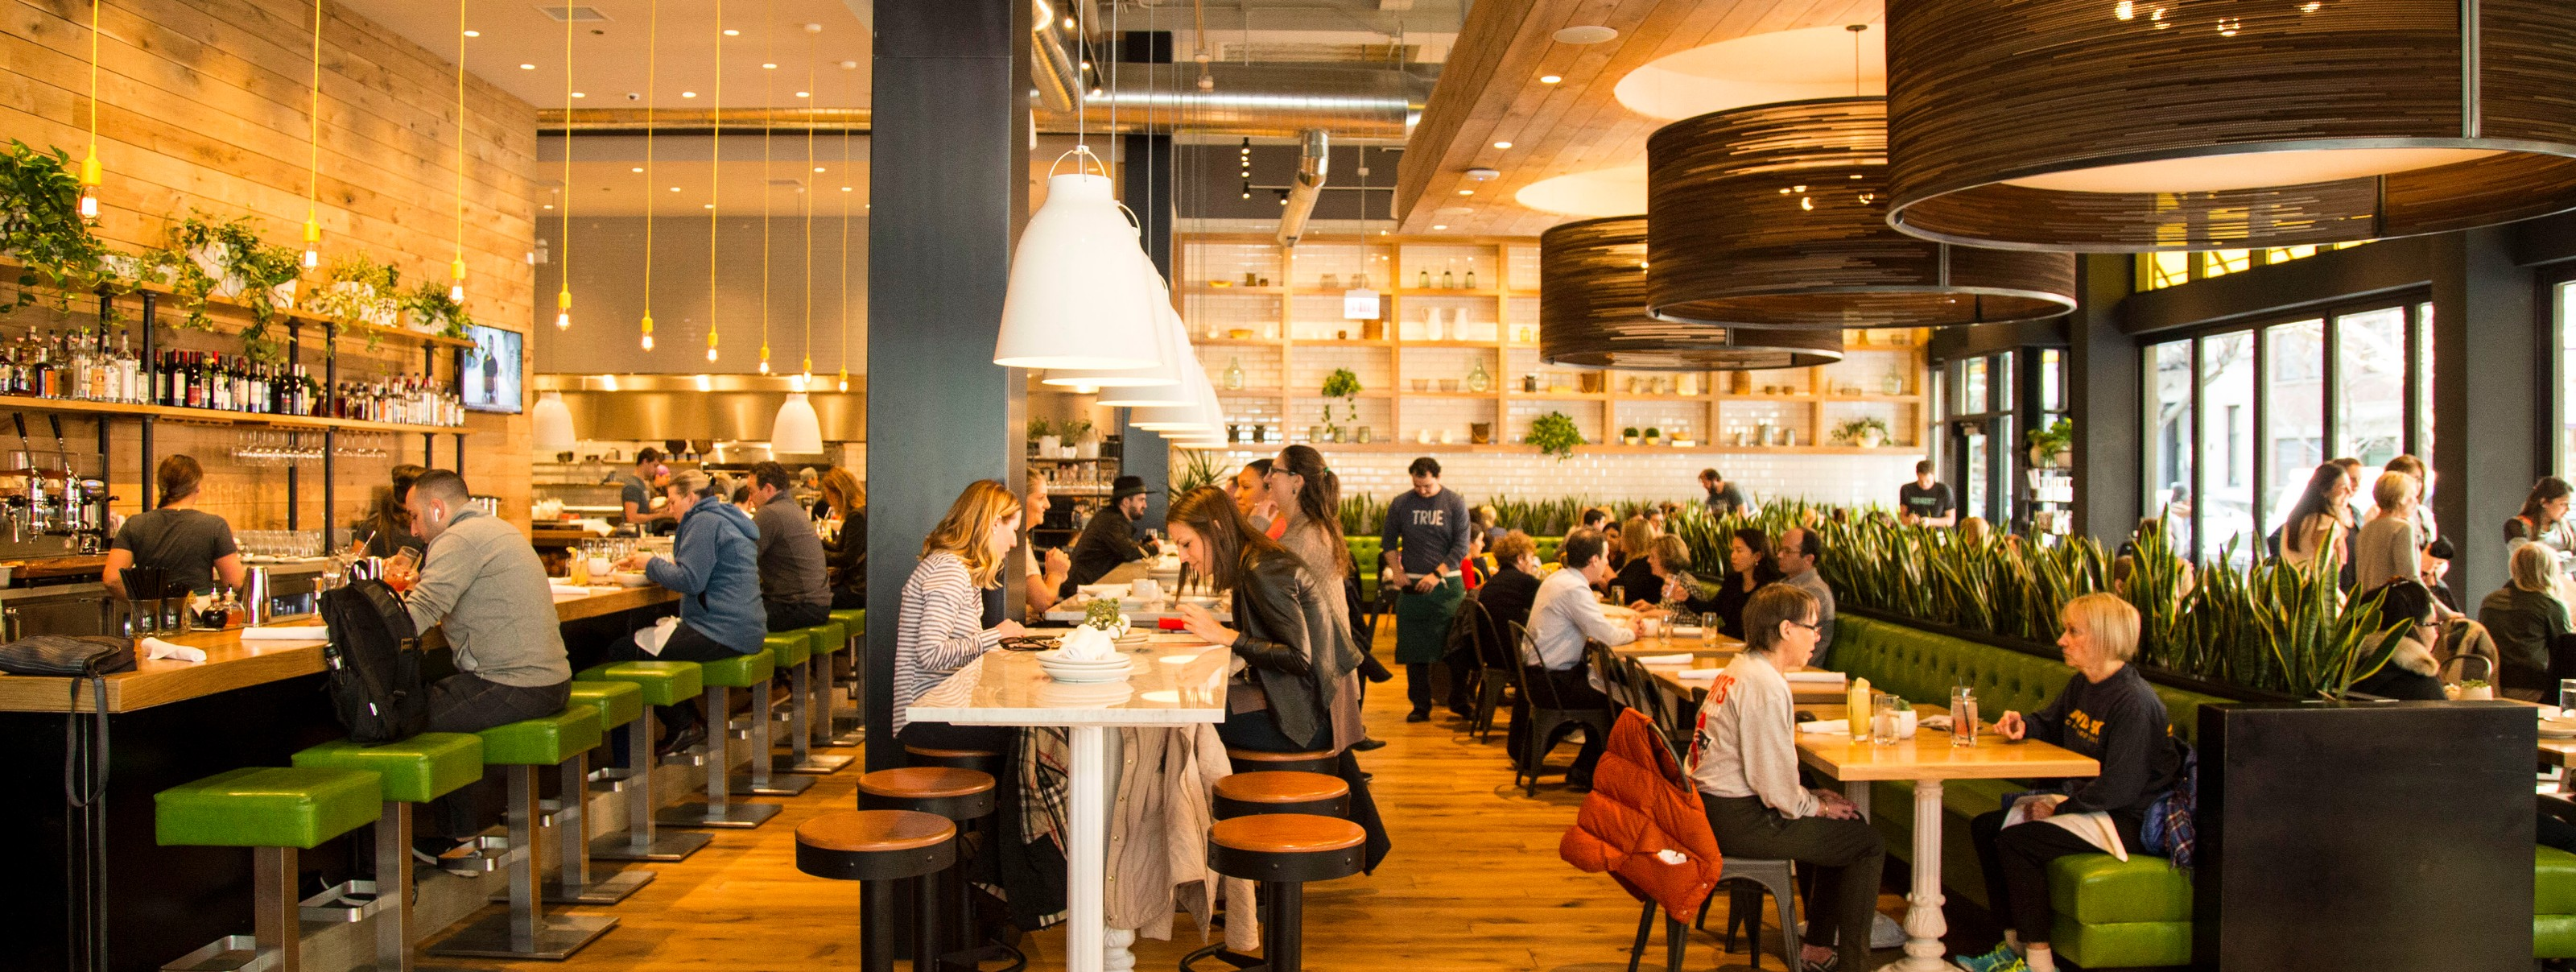 True Food Kitchen - River North - Chicago - The Infatuation